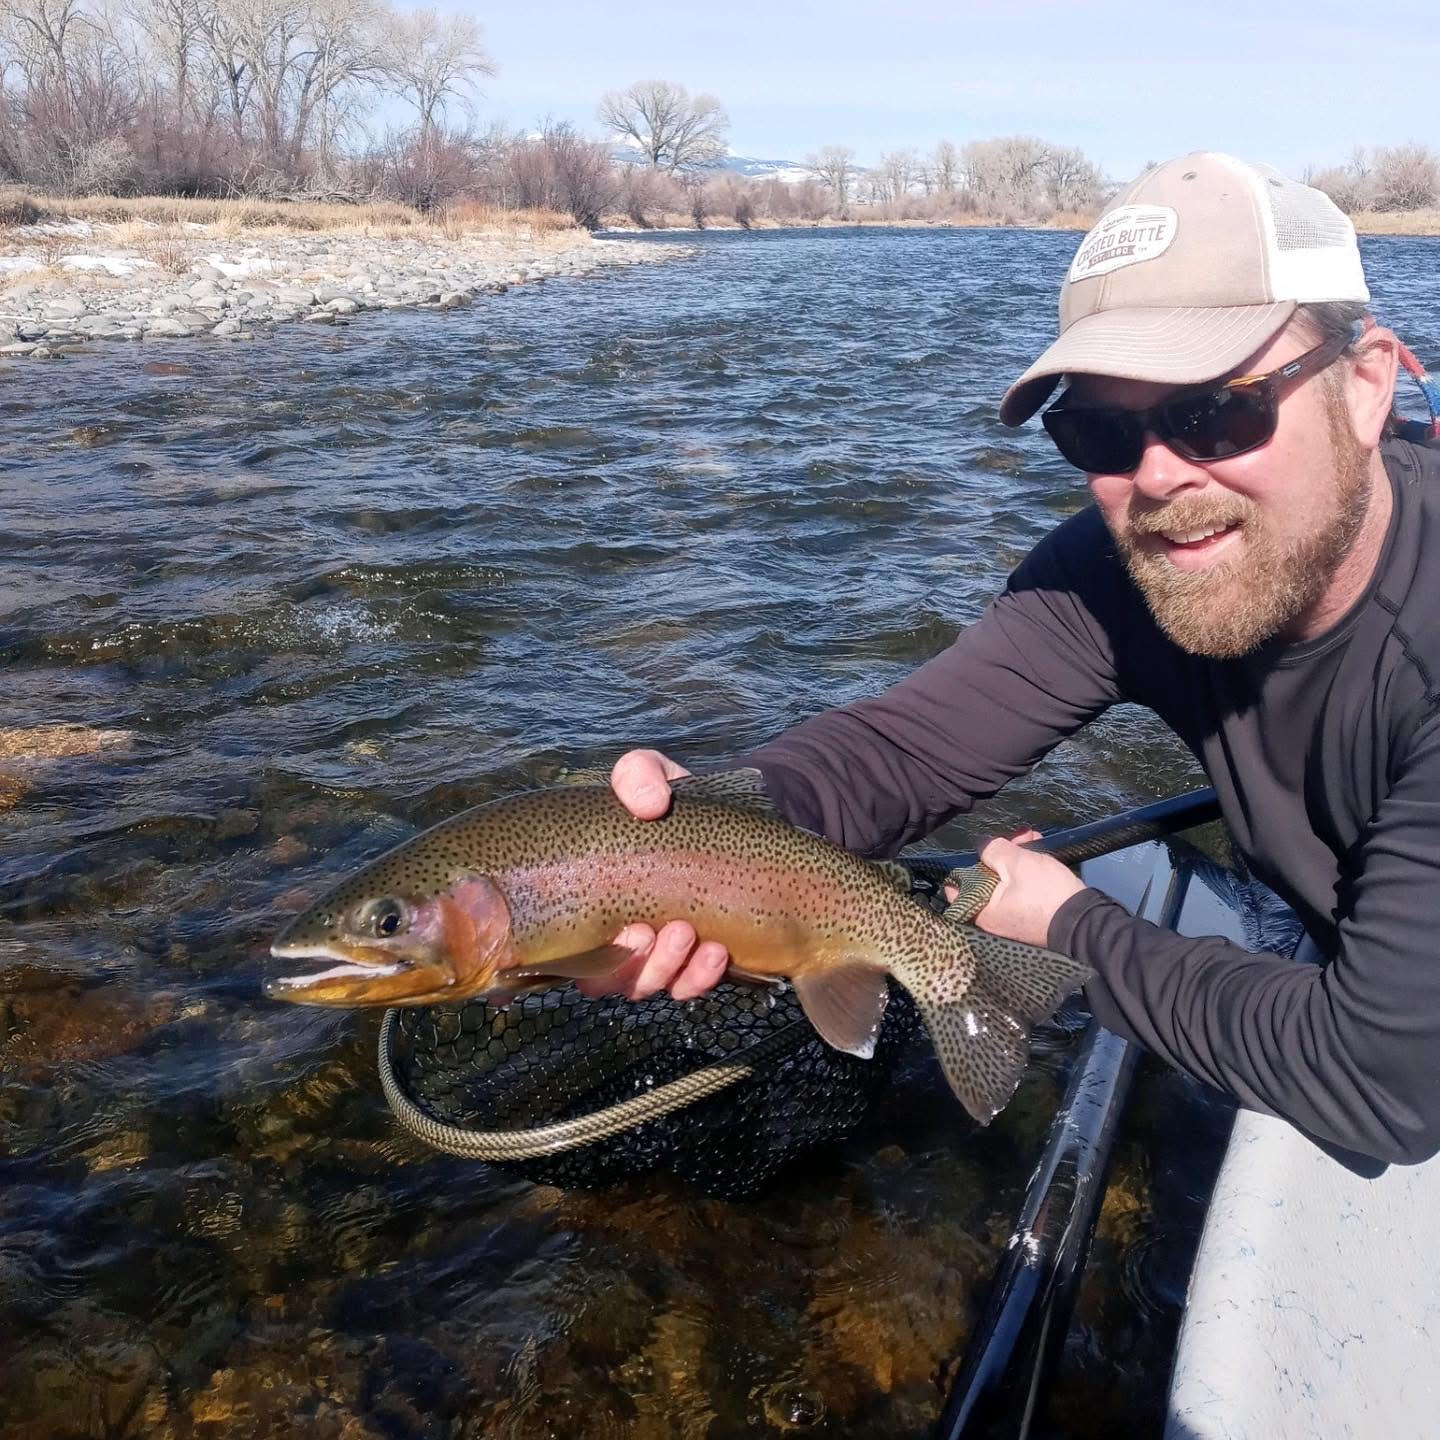 Fishtales Outfitting guide Dave Hernden holding up a beautiful Madison river rainbow trout.